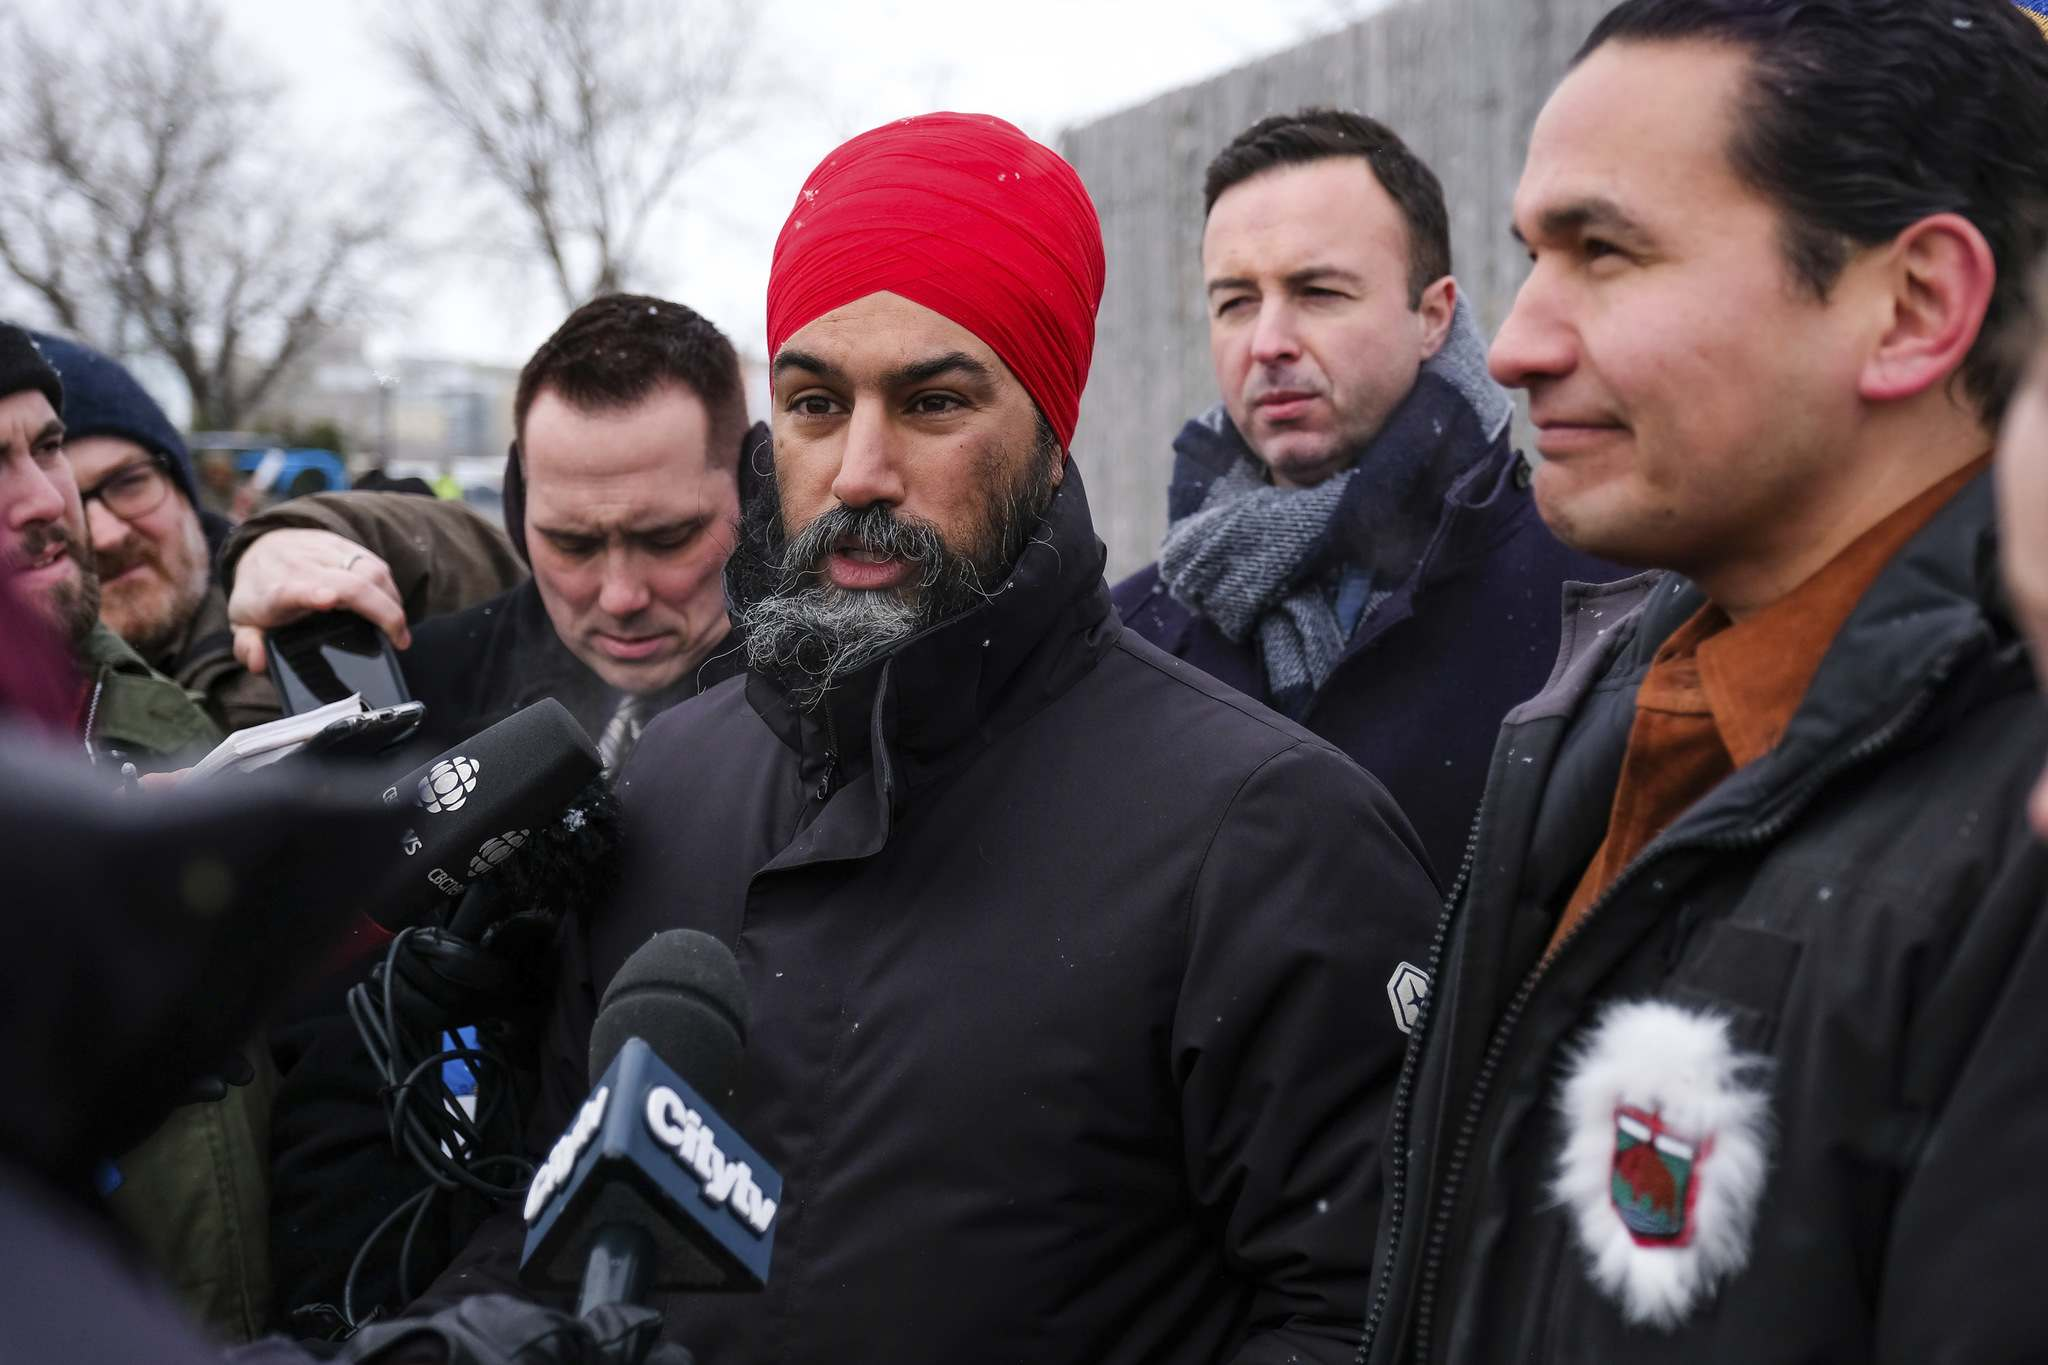 Daniel Crump / Winnipeg Free Press</p><p>Federal NDP Leader Jagmeet Singh (middle) and Provincial NDP Leader Wab Kinew (right) field questions from the media at Festival du Voyageur on Monday.</p>